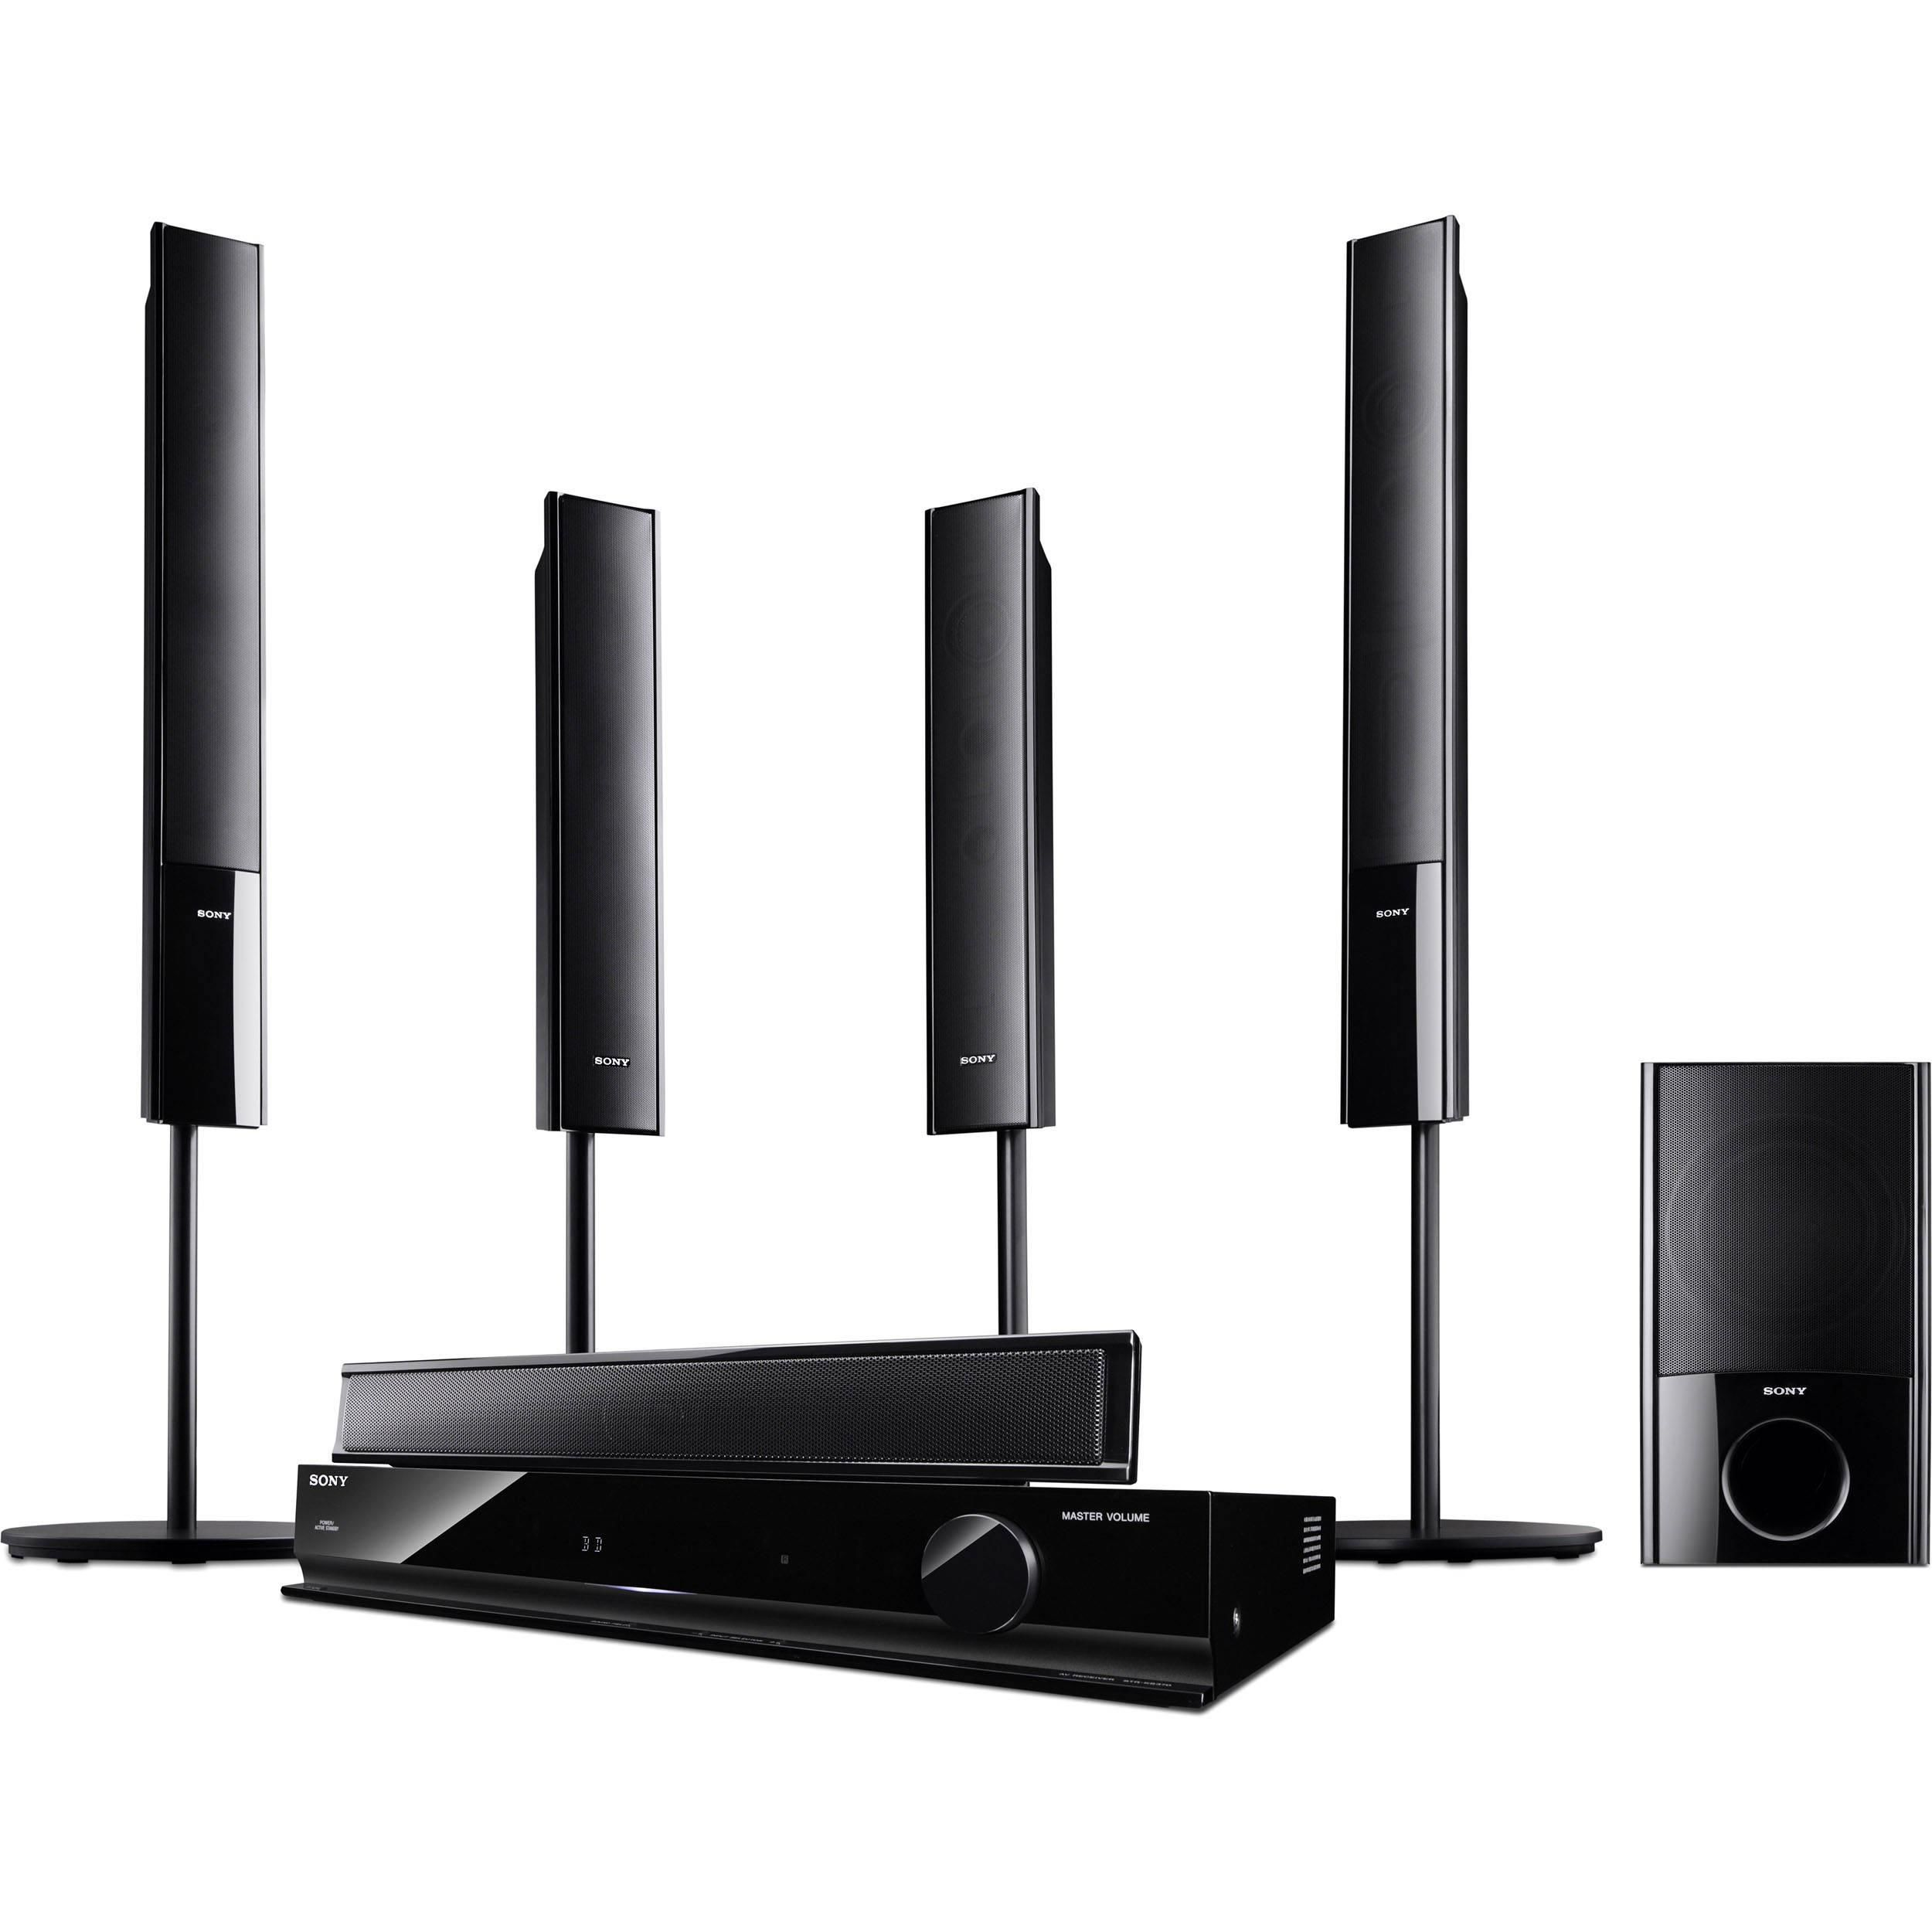 home theater system sony. call or whatsapp - 95882191. more details in the link below http://www.cnet.com/products/sony-ht-sf470/specs/. sony 5.1 home theater system